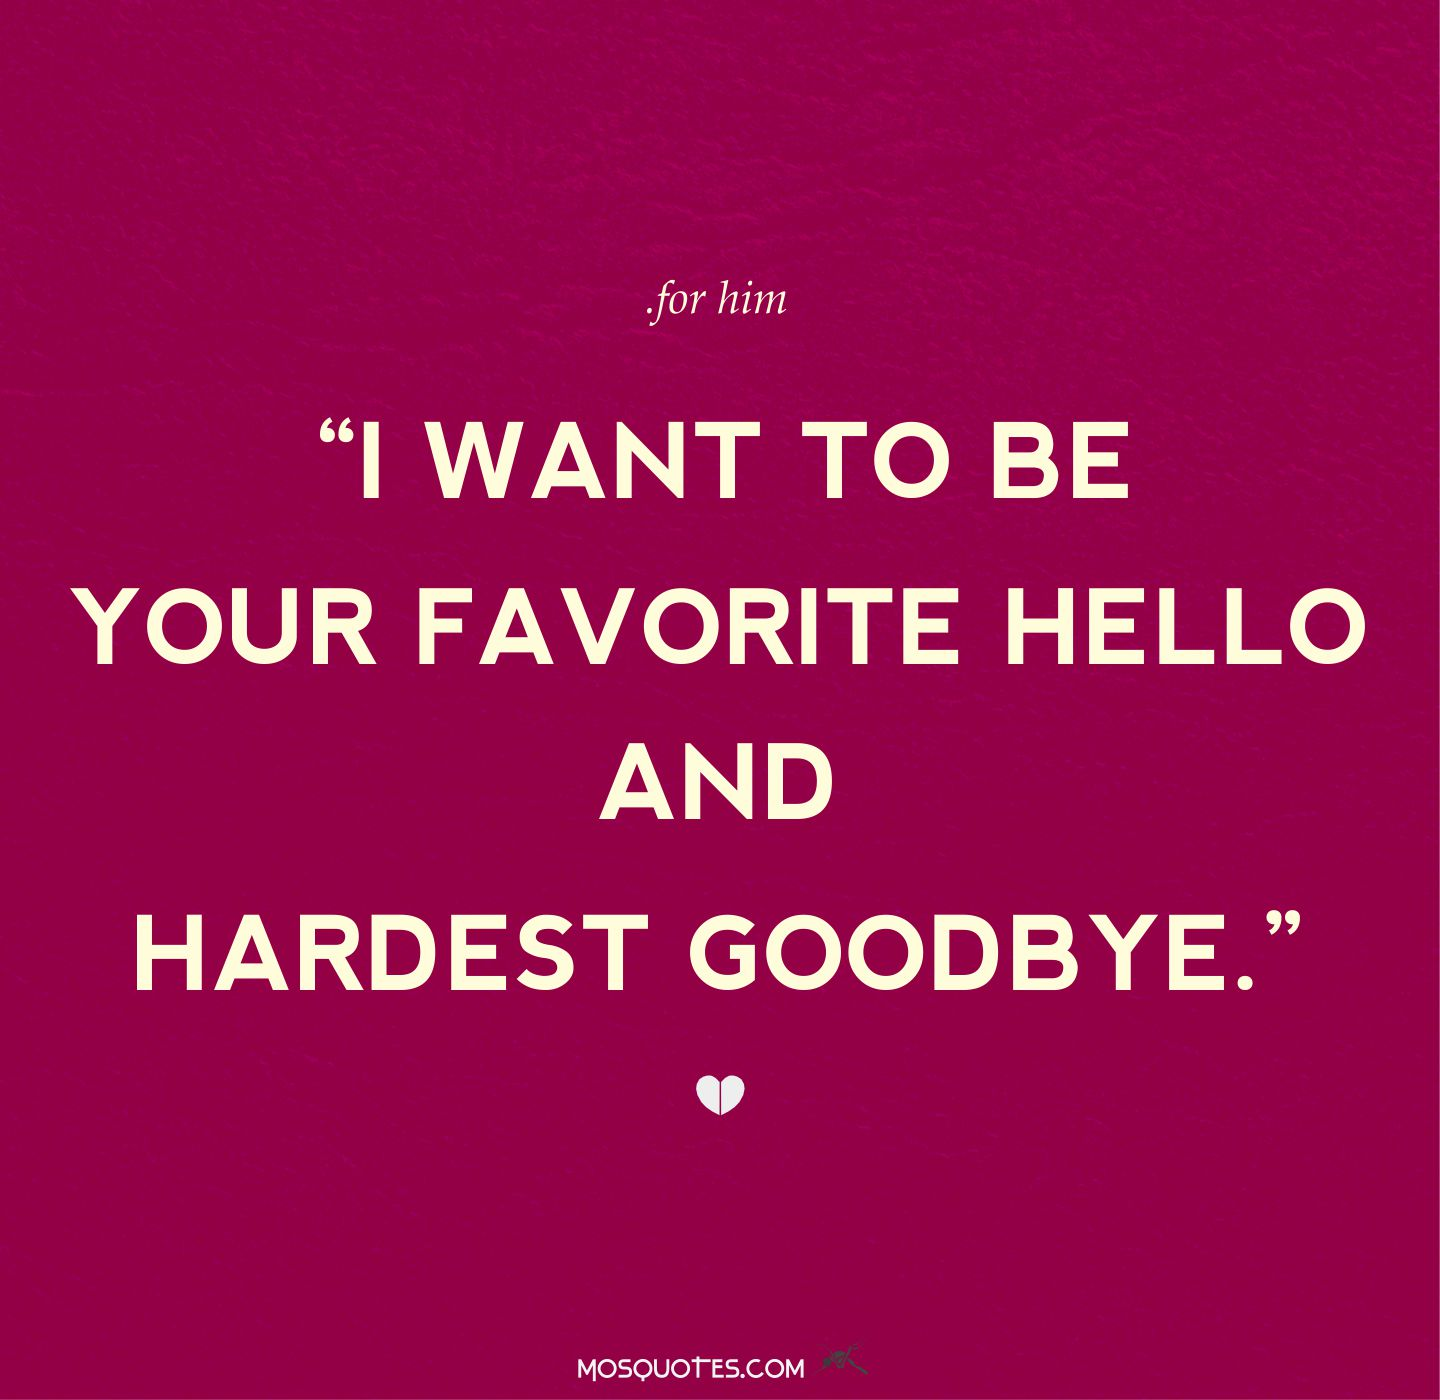 Quotes About Love For Him: Goodbye Love Quotes For Him. QuotesGram